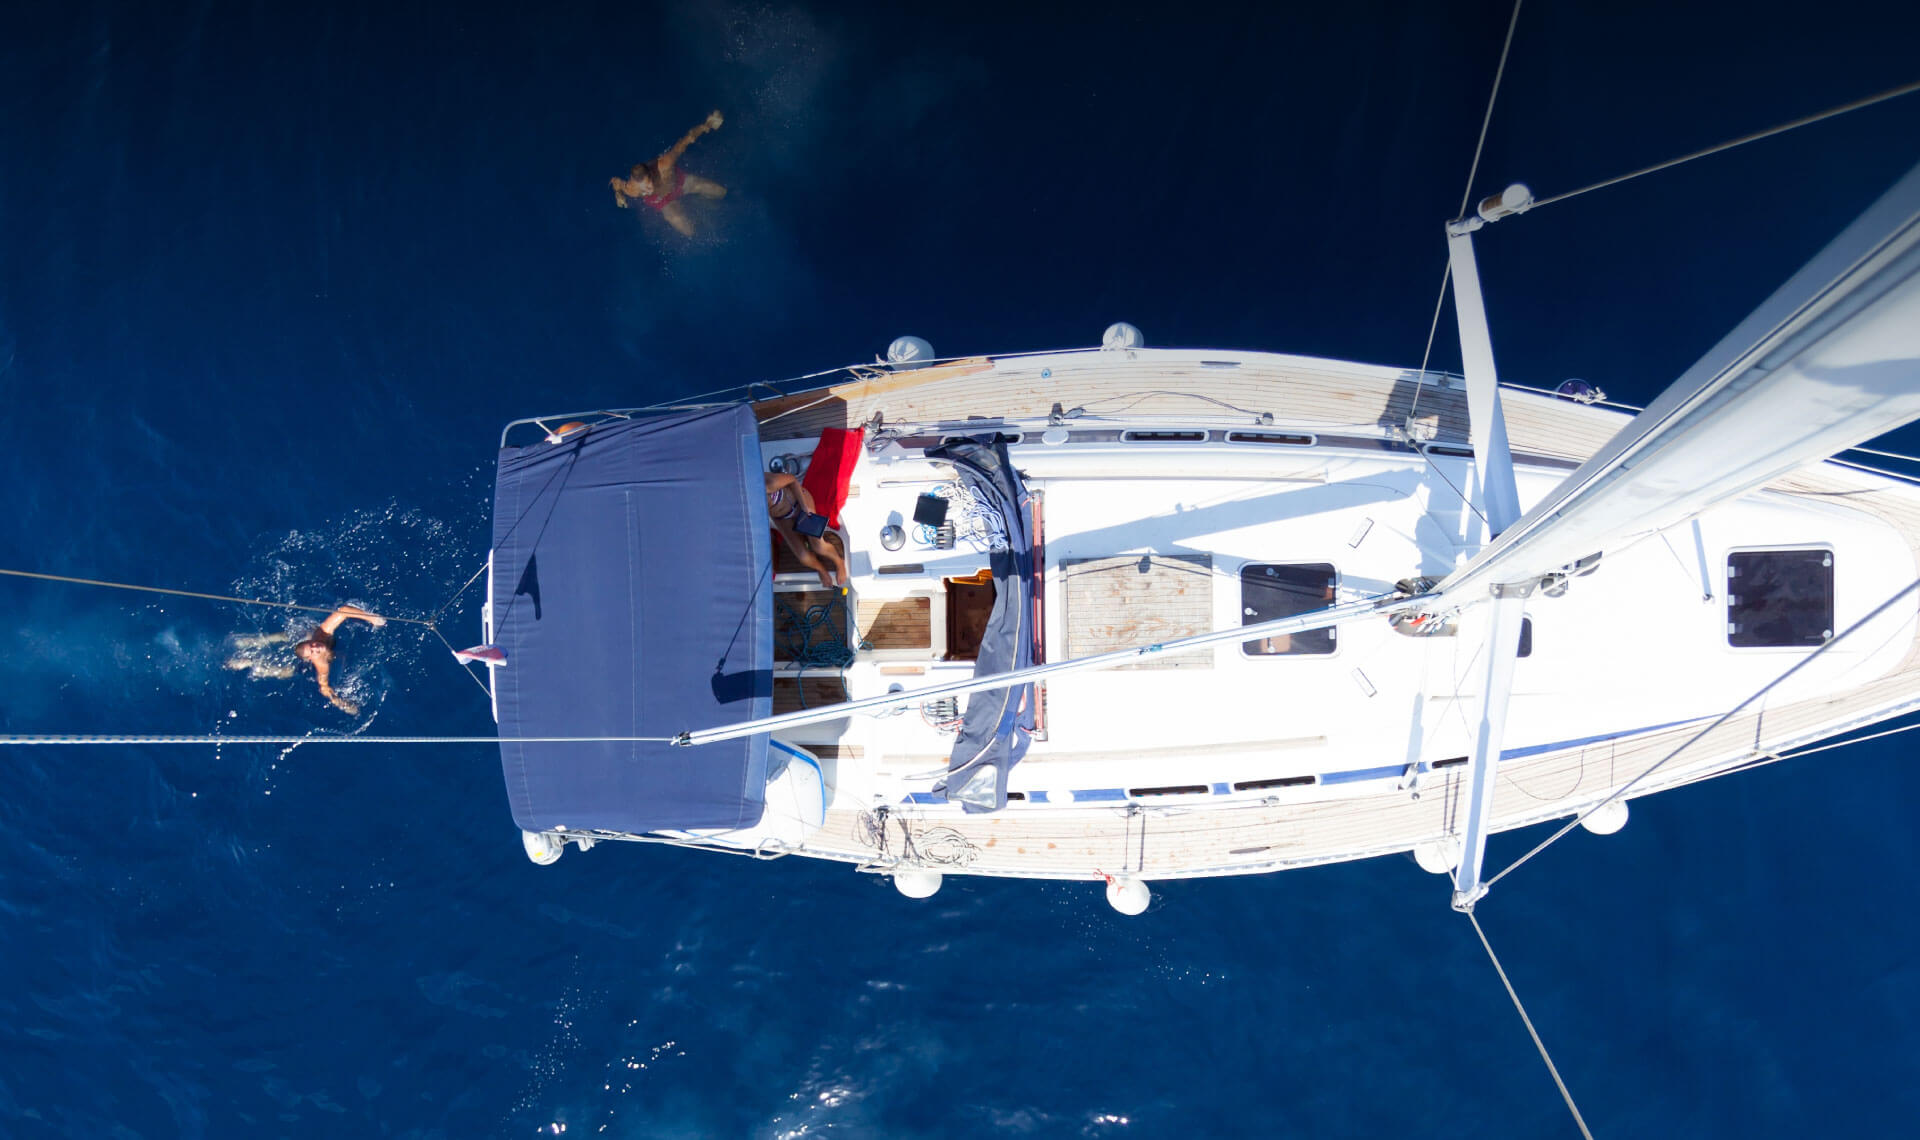 Bird's eye view of people swimming around a sailboat.